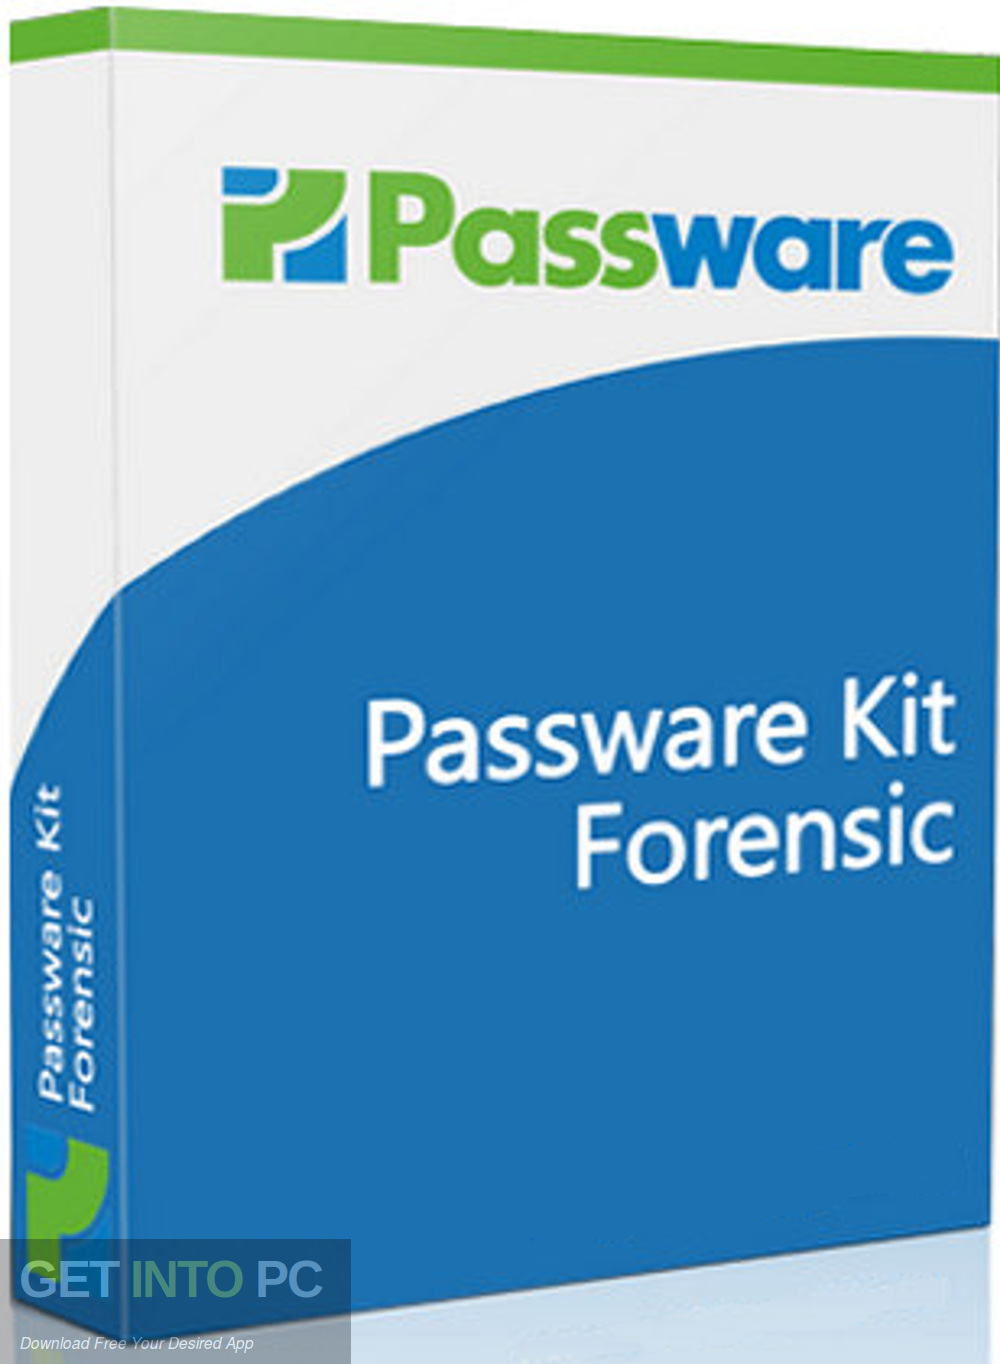 Passware Kit Forensic 2017 Free Download-GetintoPC.com